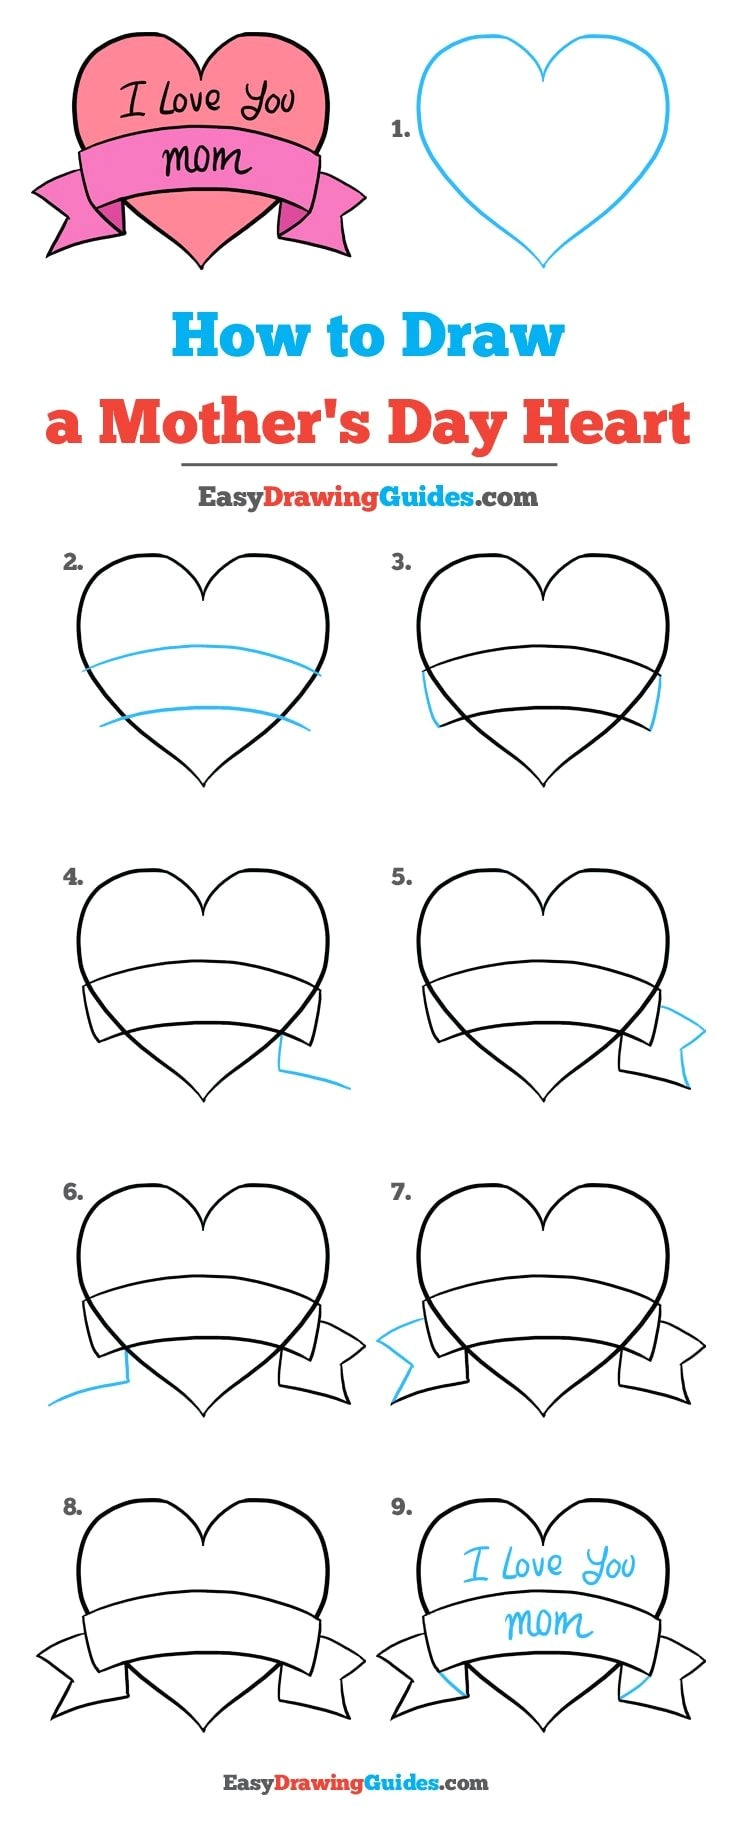 Easy Drawings for Mom How to Draw A Mother S Day Heart Really Easy Drawing Tutorial